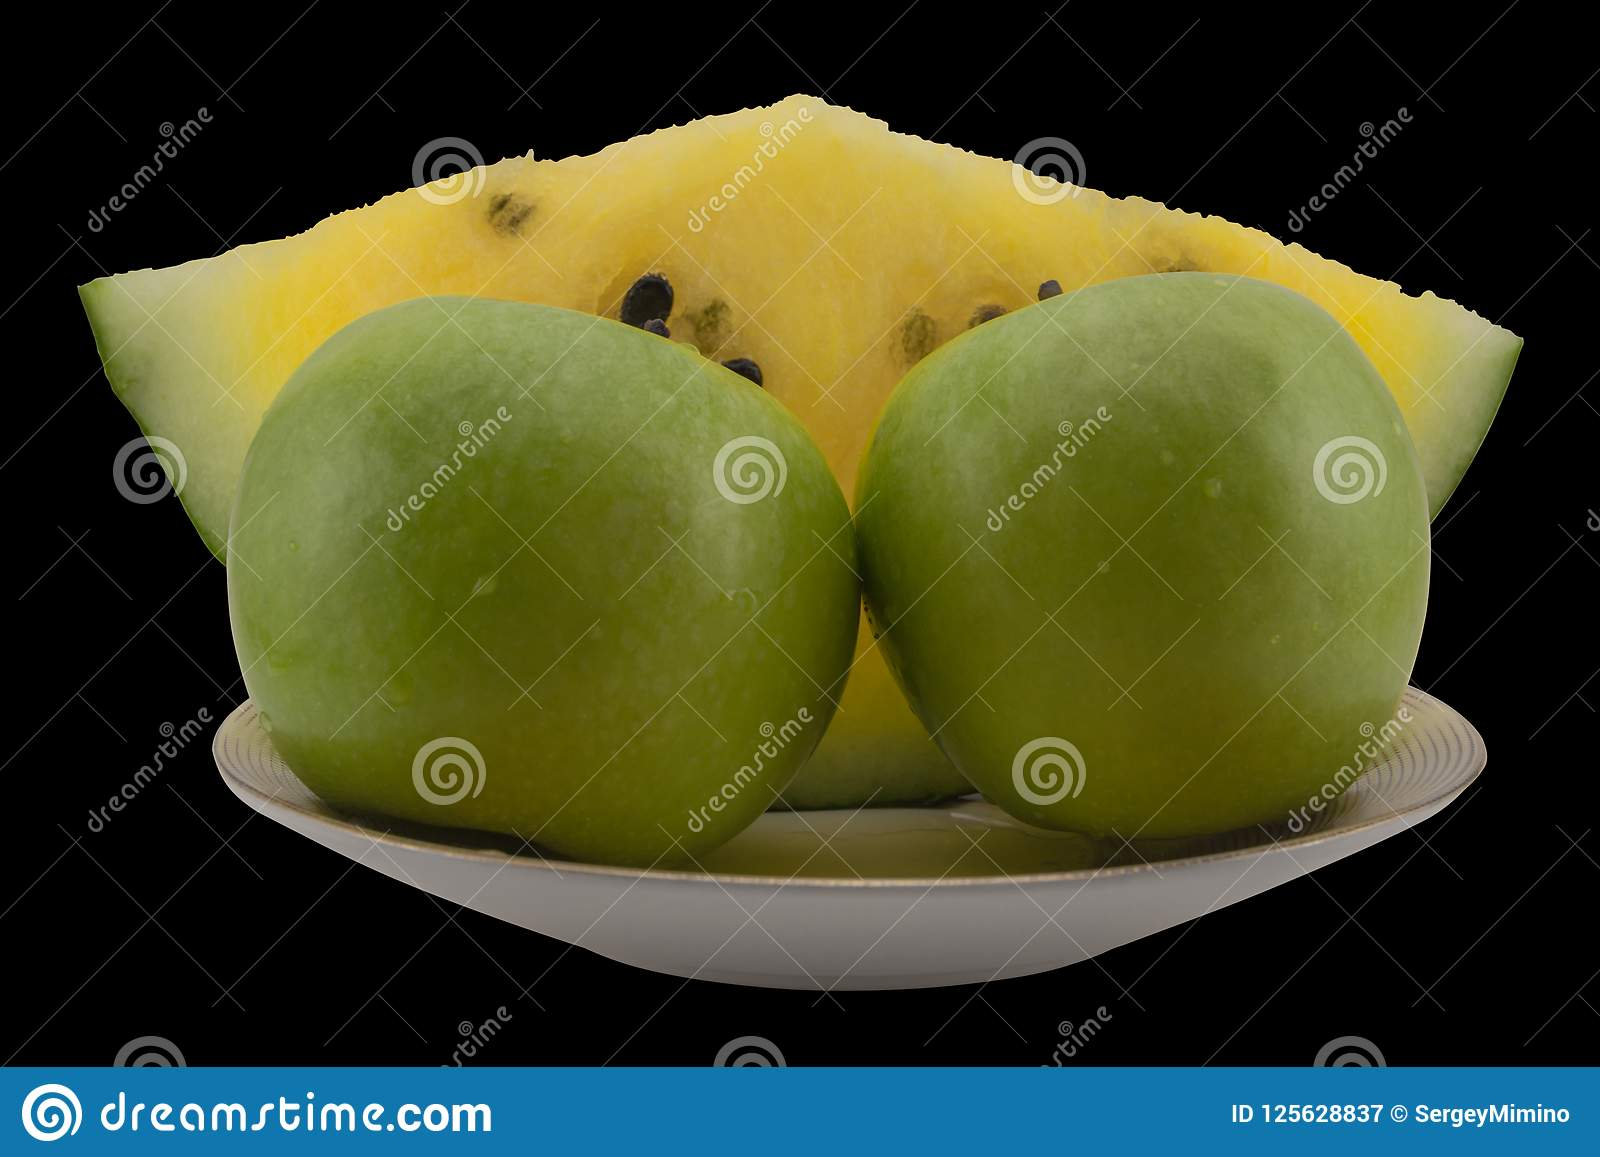 The slice of yellow watermelon and green apples on the plate.